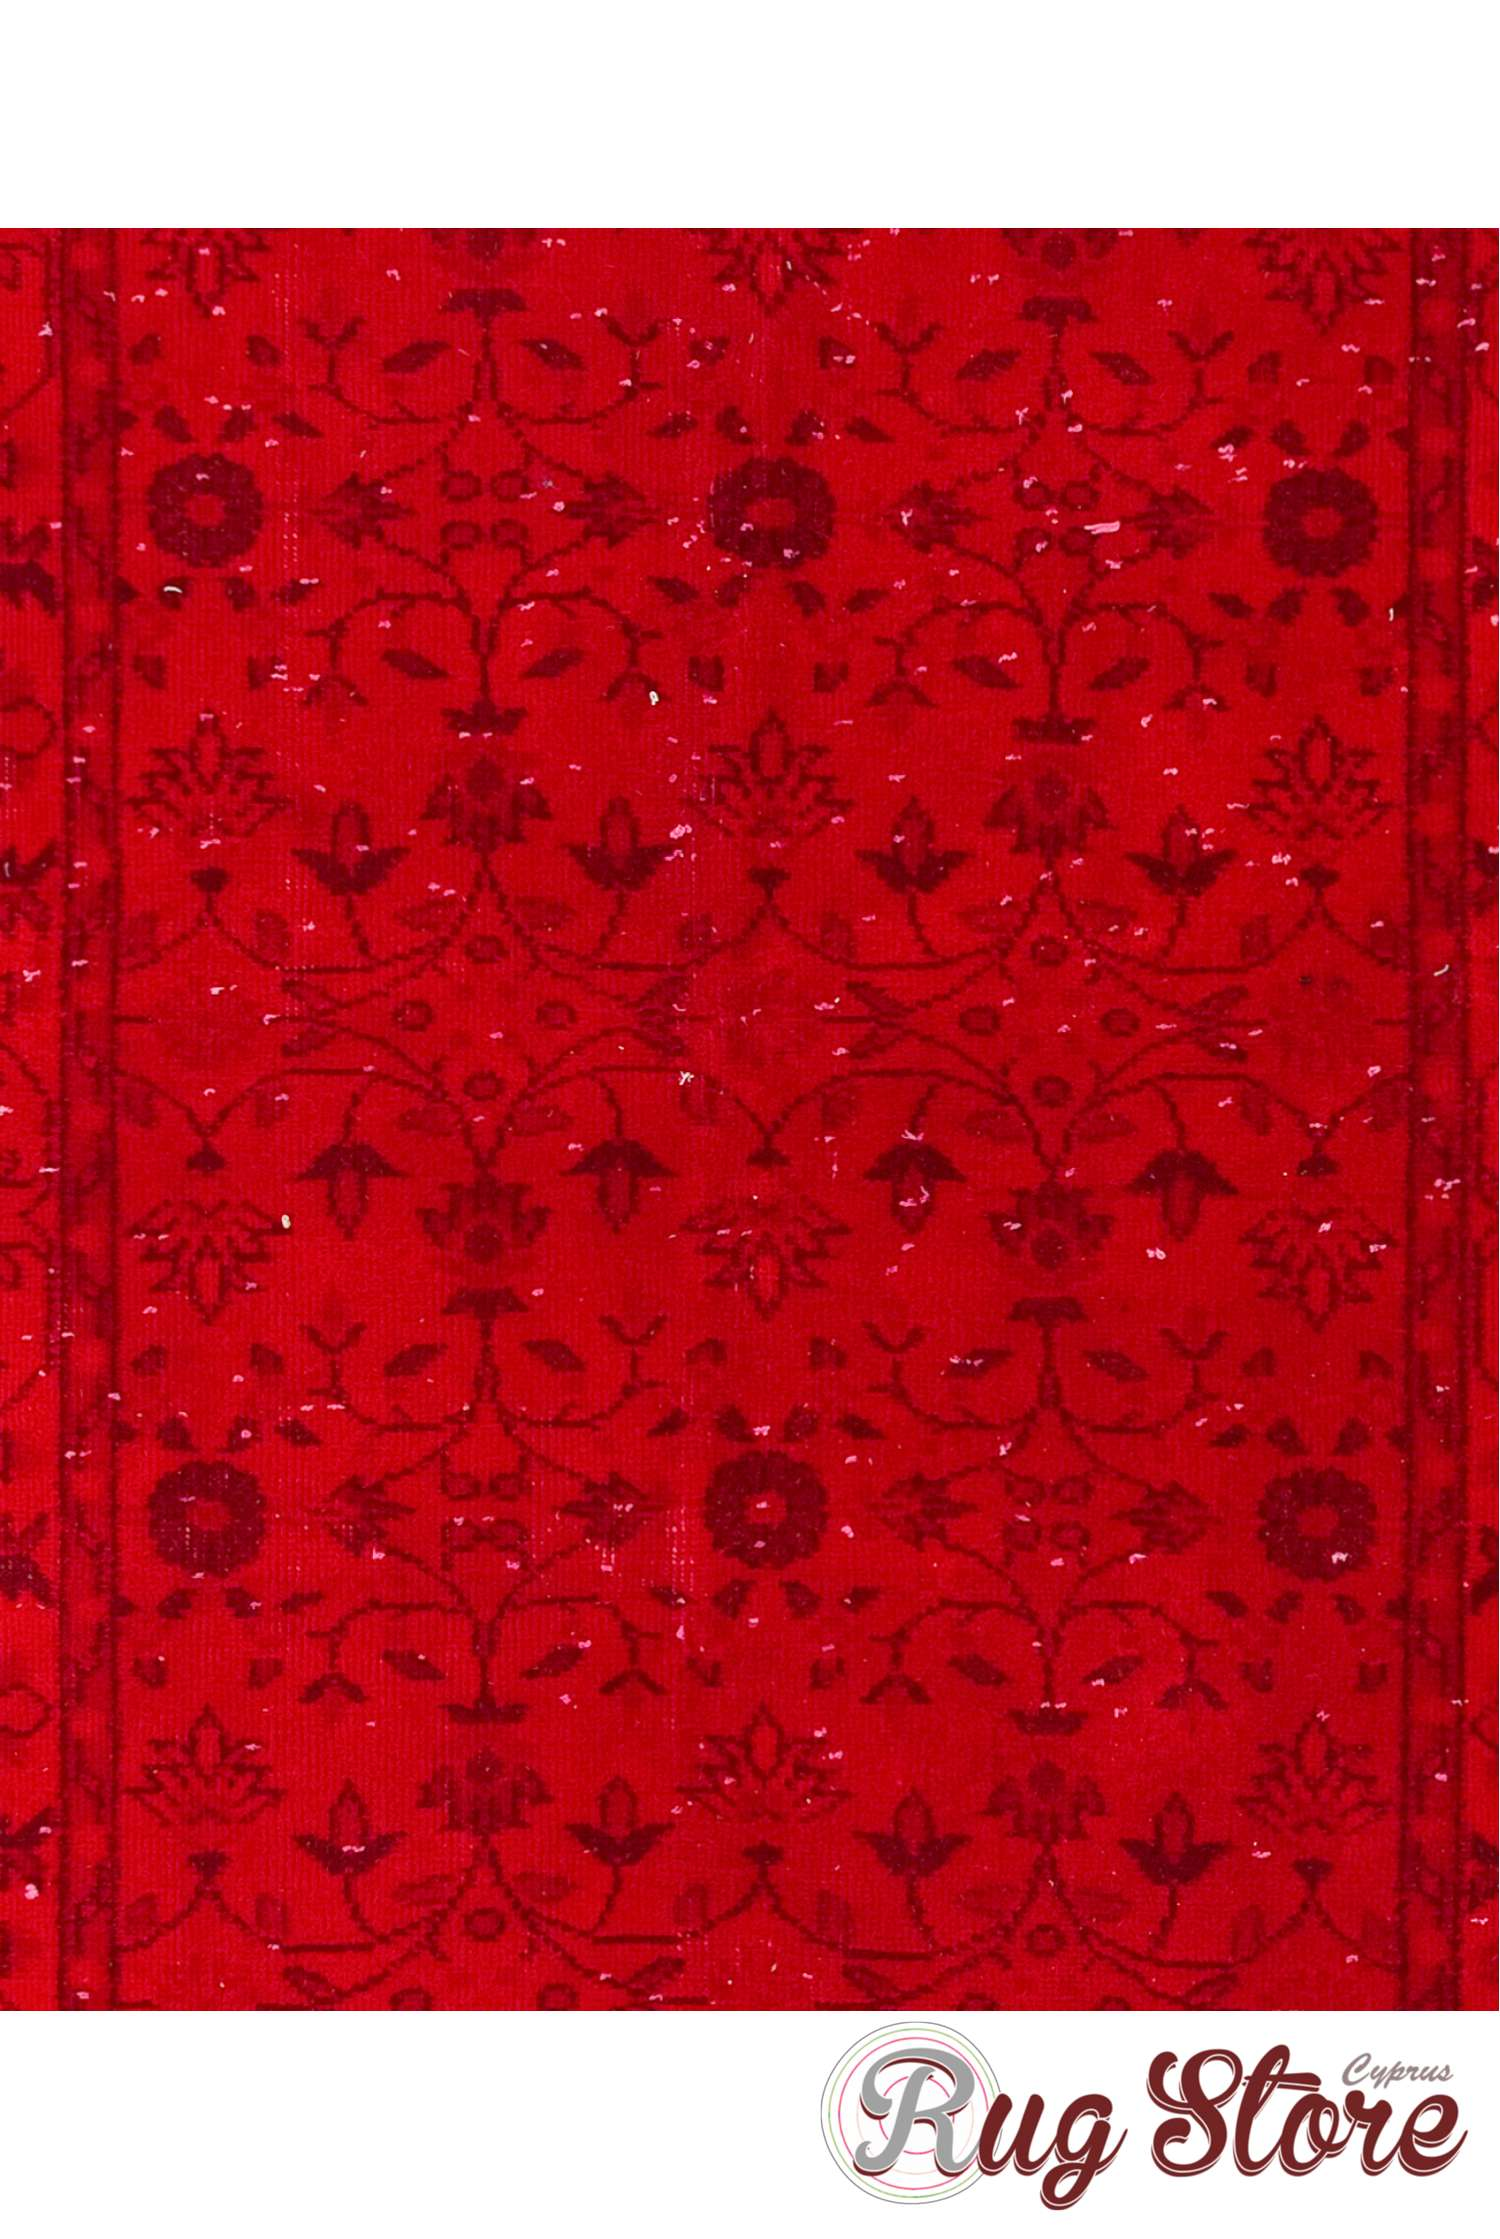 Red Color Vintage Overdyed Handmade Turkish Rug, Red